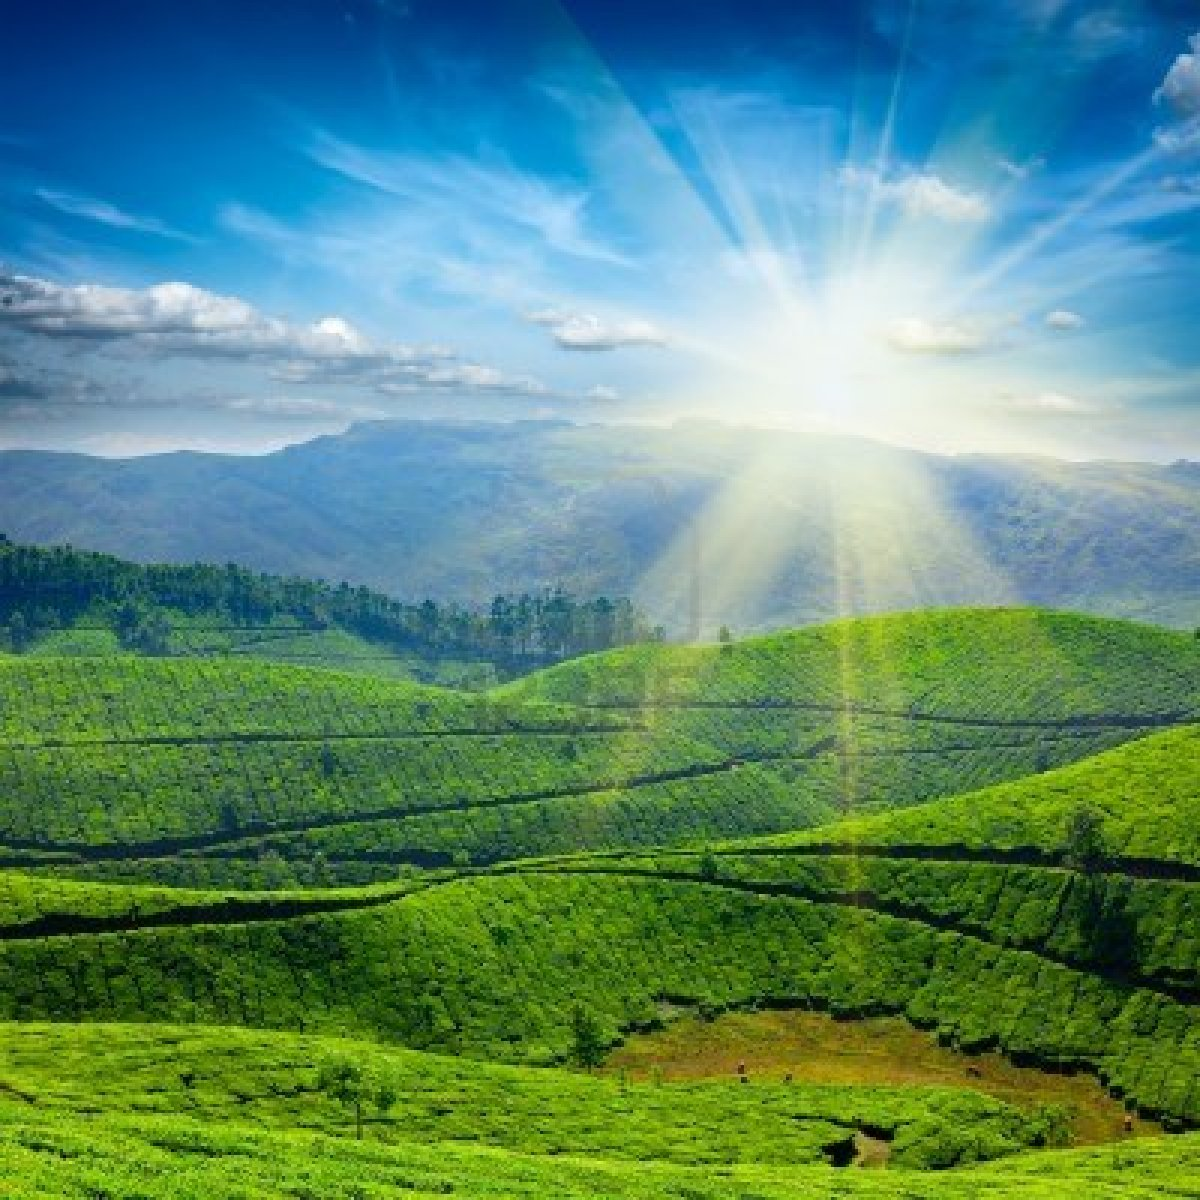 Munnar Destination That Must Visit In Kerala Shanayashah29